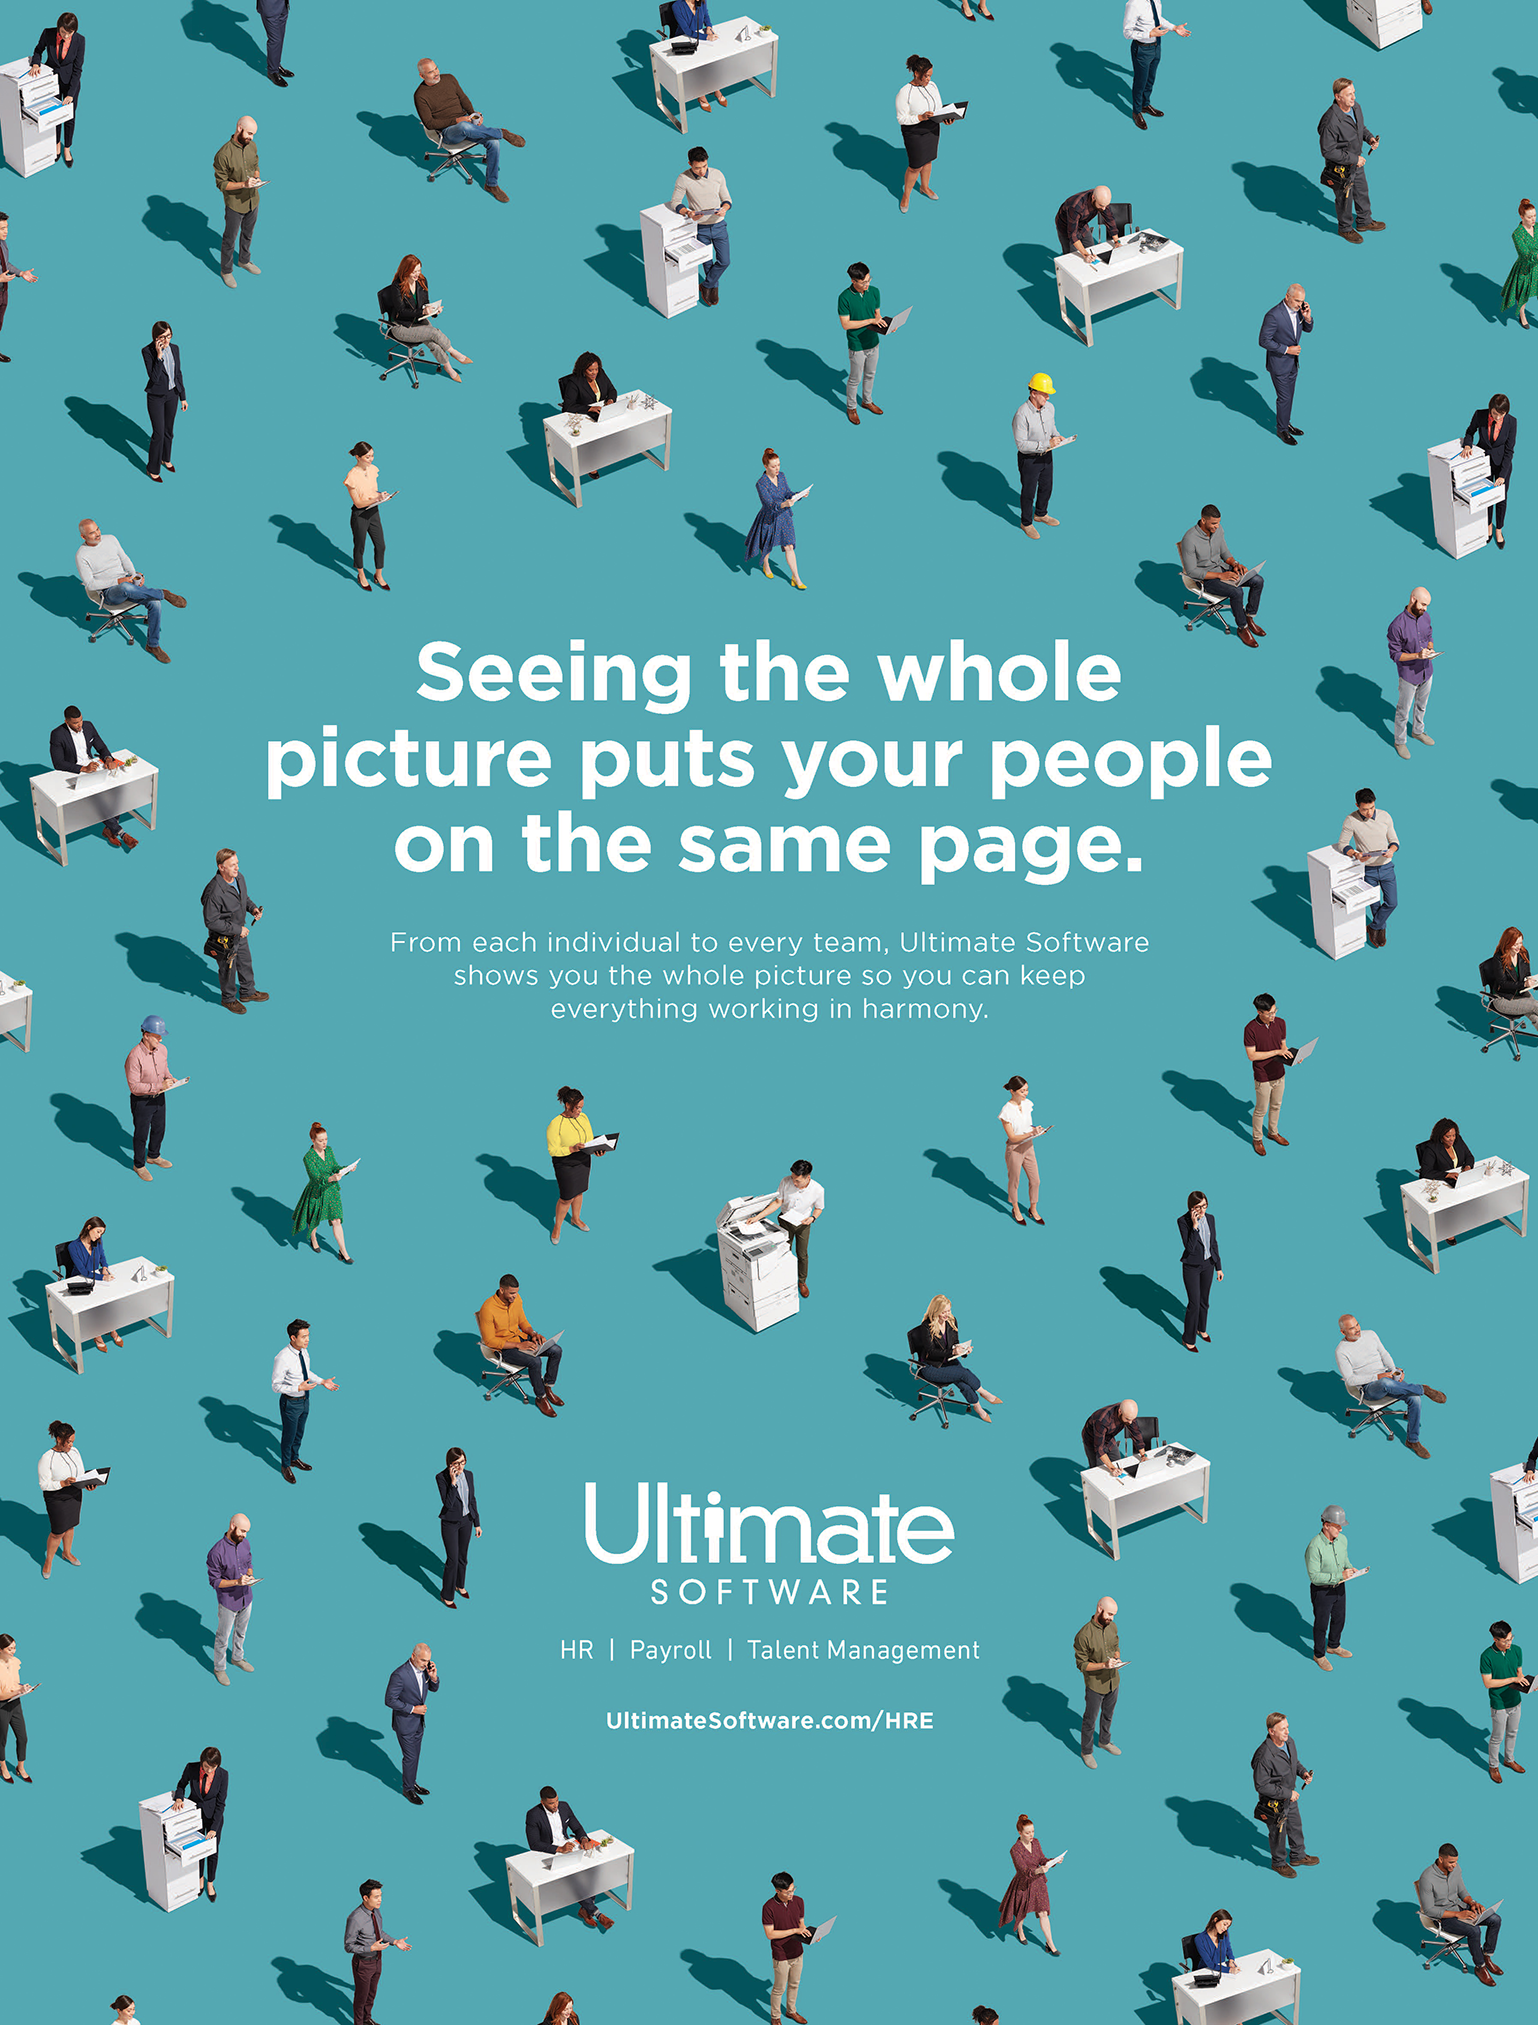 Based on your browser, this might get cropped awkwardly. Click above to see the full print ad.